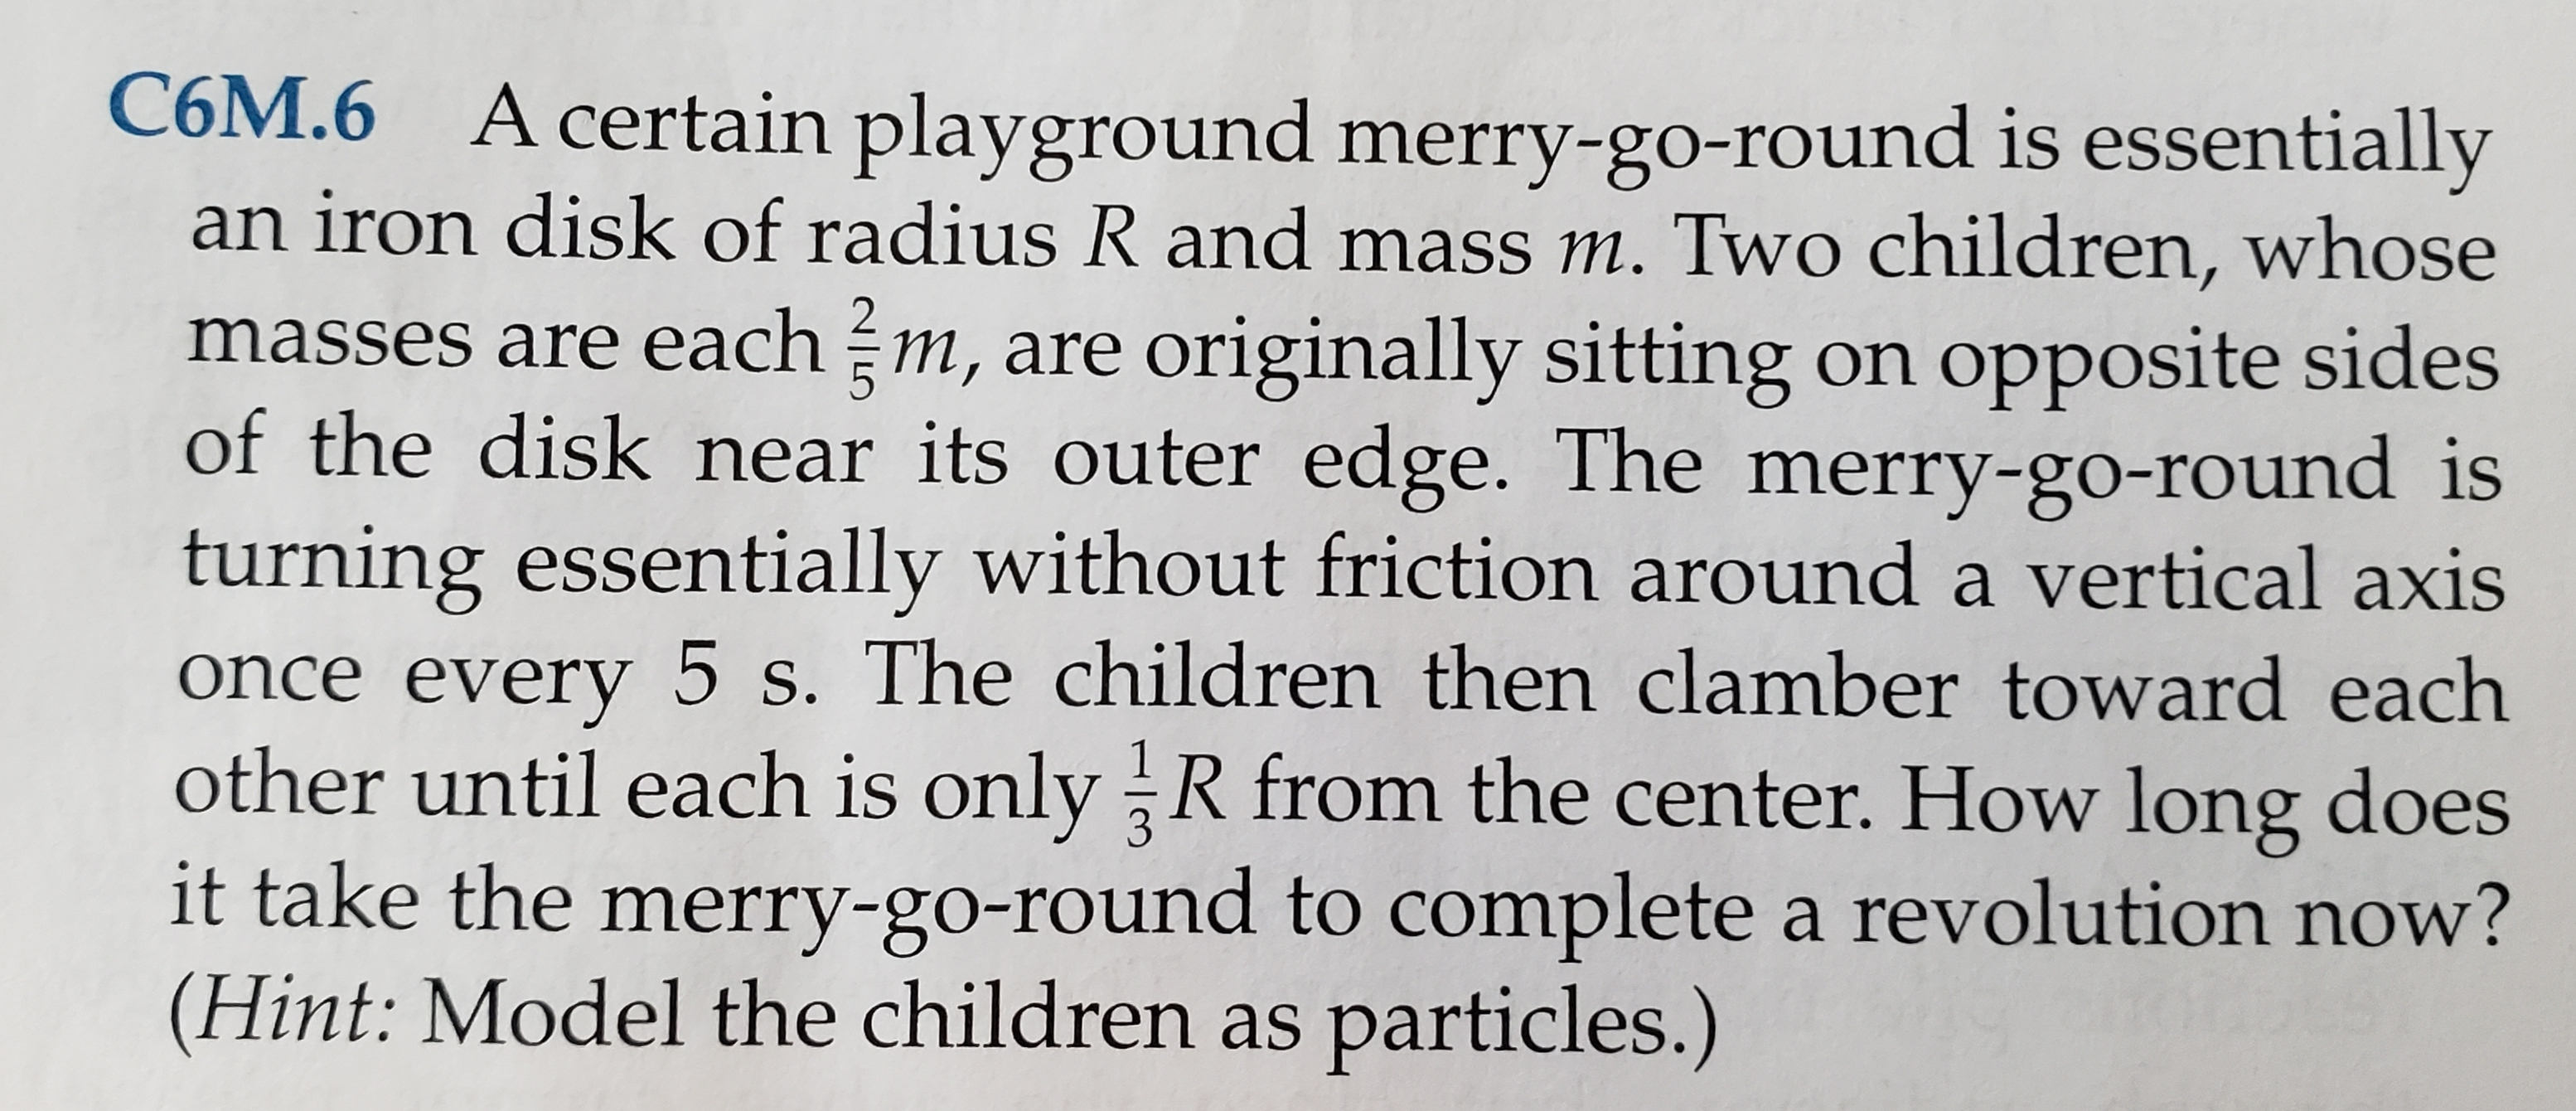 C6M.6 A certain playground merry-go-round is essentially an iron disk of radius R and mass m. Two children, whose masses are each m, are originally sitting on opposite sides of the disk near its outer edge. The merry-go-round is turning essentially without friction around a vertical axis once every 5 s. The children then clamber toward each other until each is only R from the center. How long does it take the merry-go-round to complete a revolution now? (Hint: Model the children as particles.)